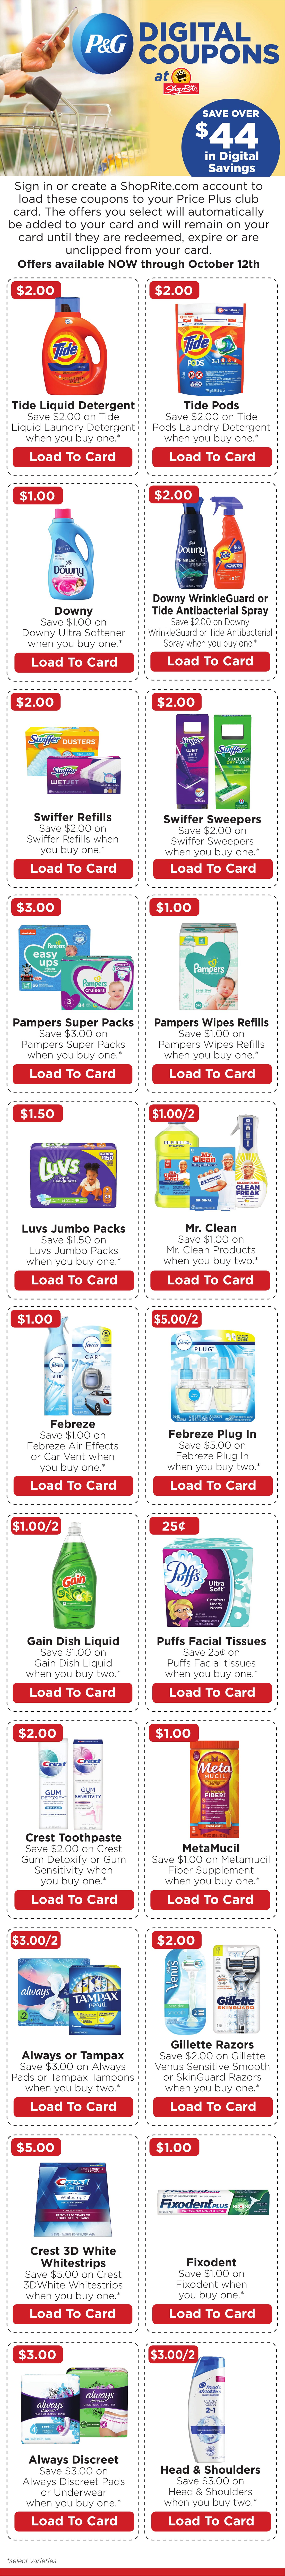 P G Everyday Save Over 40 This Week With Digital Coupons Milled